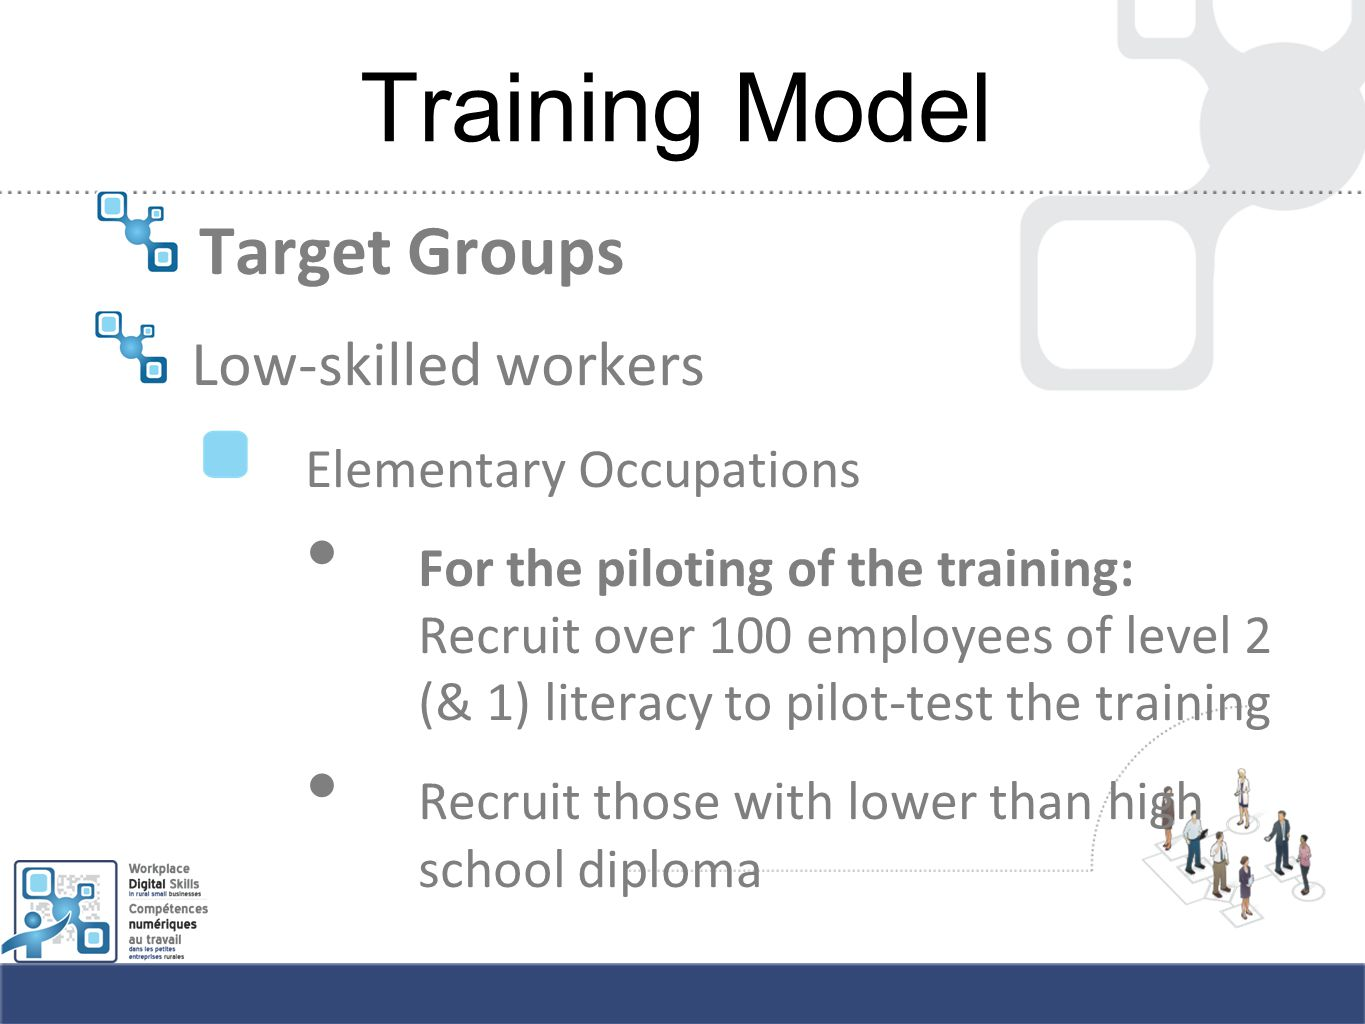 Training Model Target Groups Low-skilled workers Elementary Occupations For the piloting of the training: Recruit over 100 employees of level 2 (& 1) literacy to pilot-test the training Recruit those with lower than high school diploma